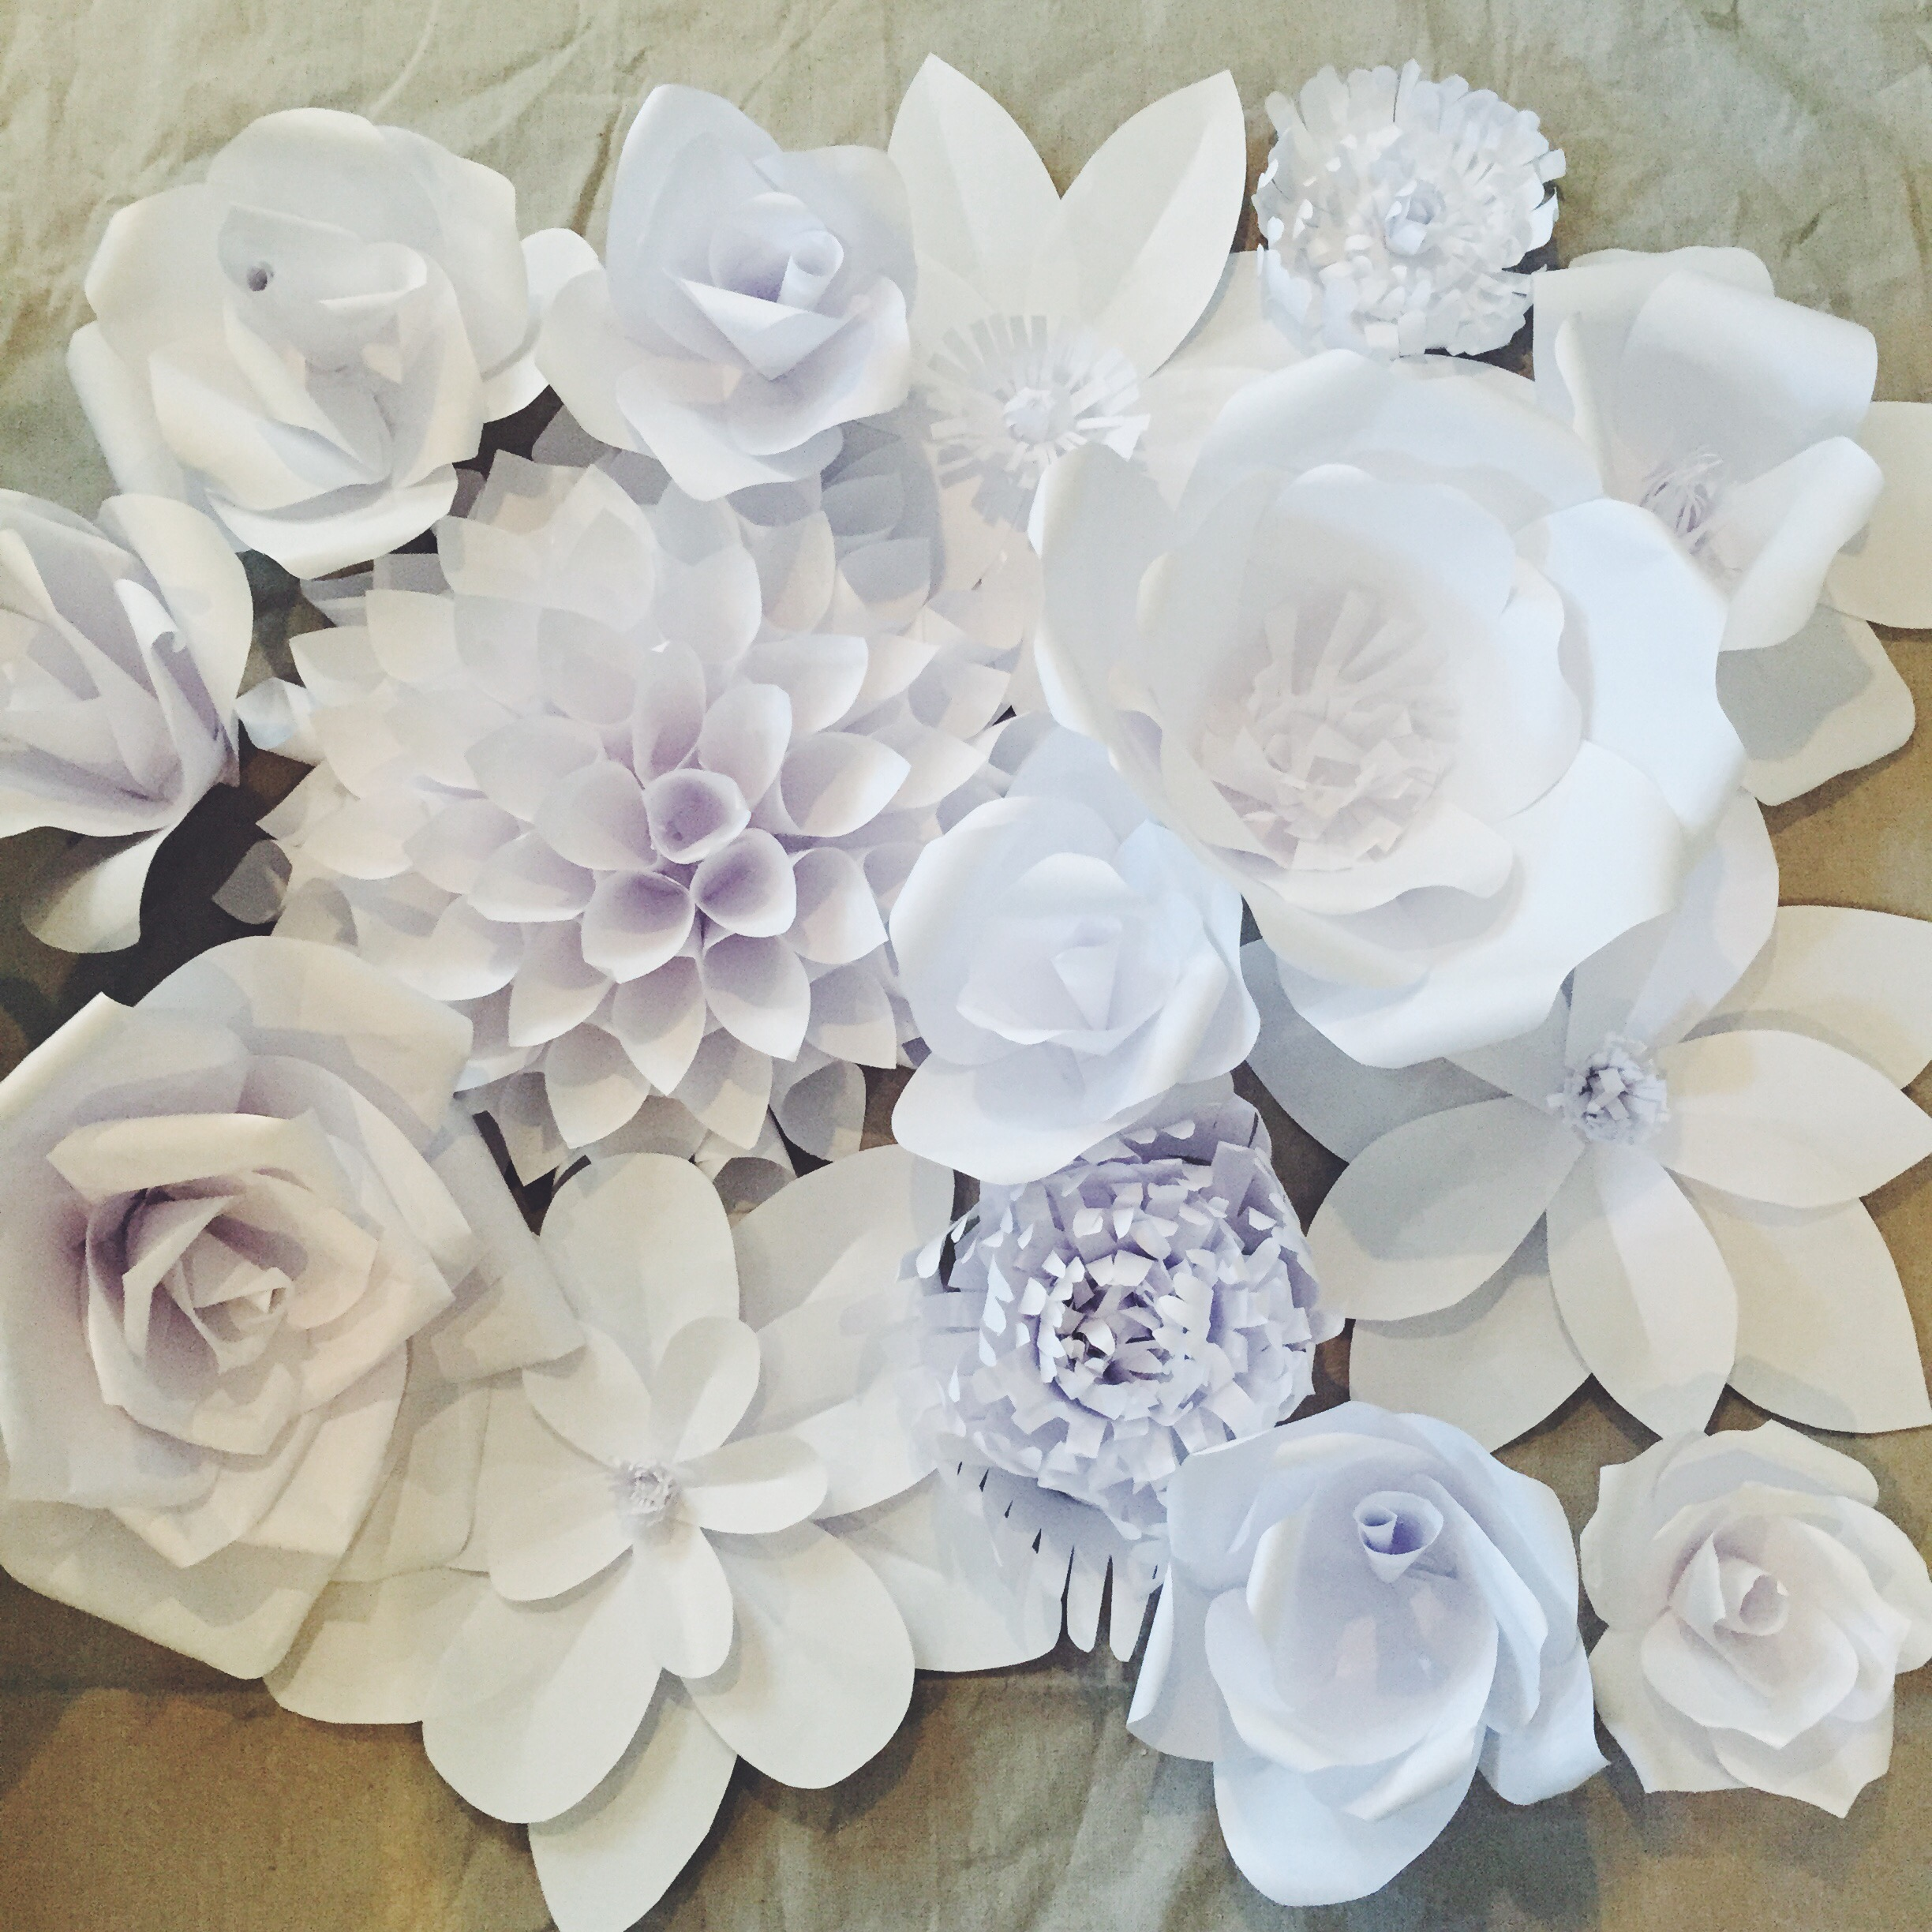 Paper Flower Backdrop: Flower 1 - Ash and Crafts